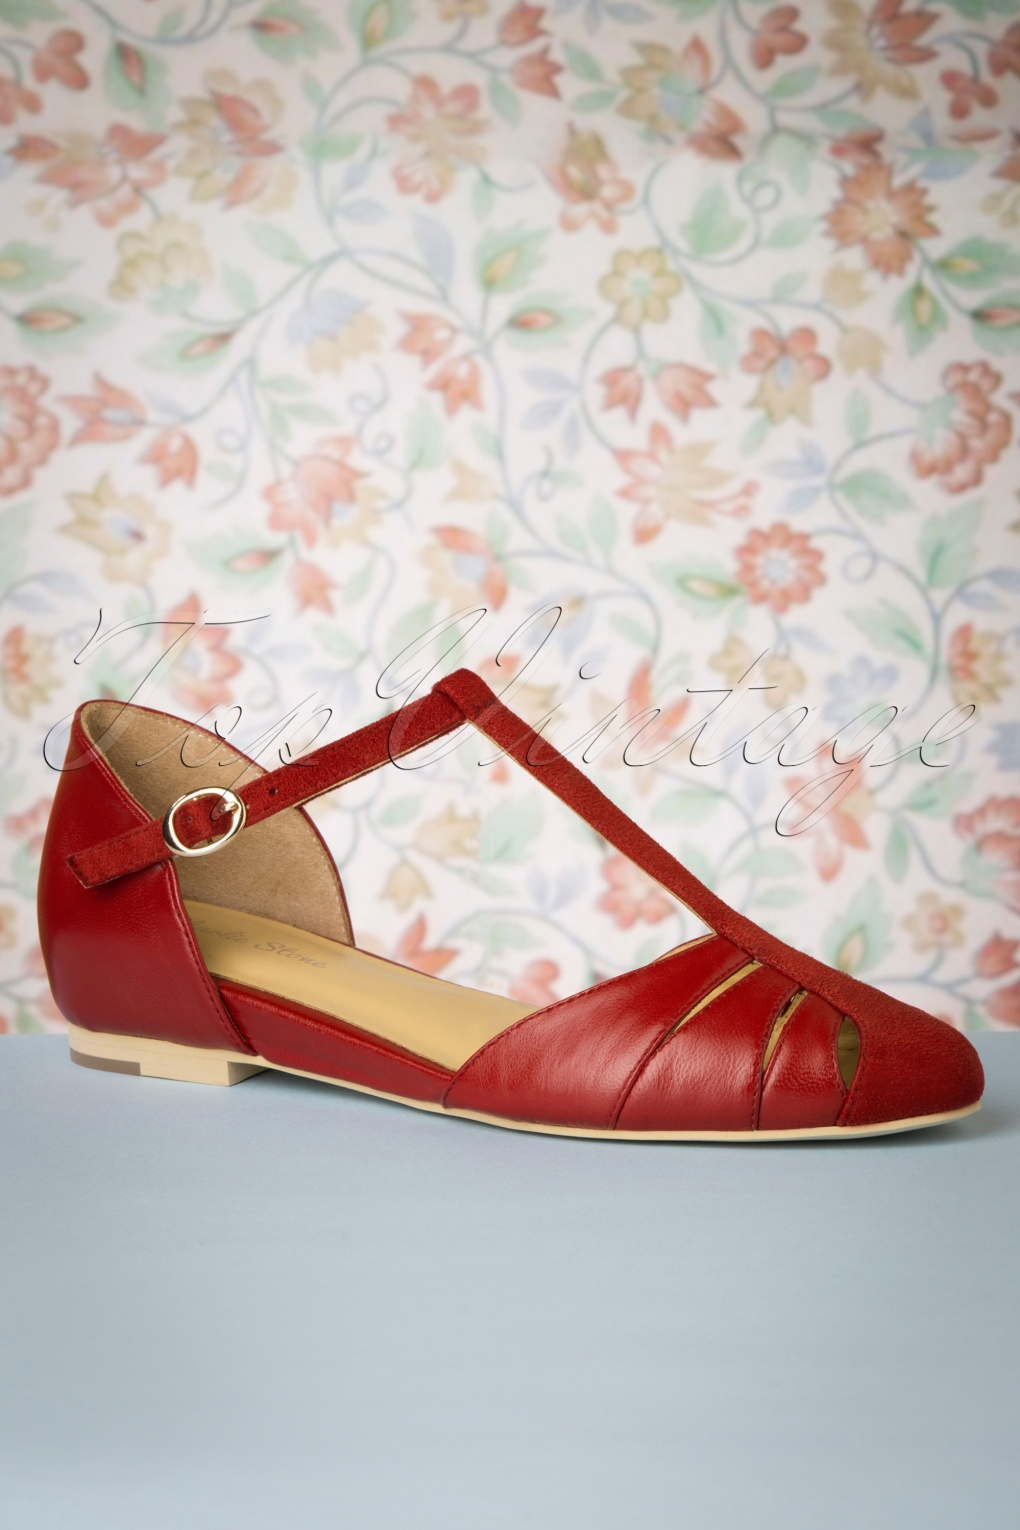 50s Dresses UK | 1950s Dresses, Shoes & Clothing Shops 50s Toscana T-Strap Flats in Red £100.51 AT vintagedancer.com